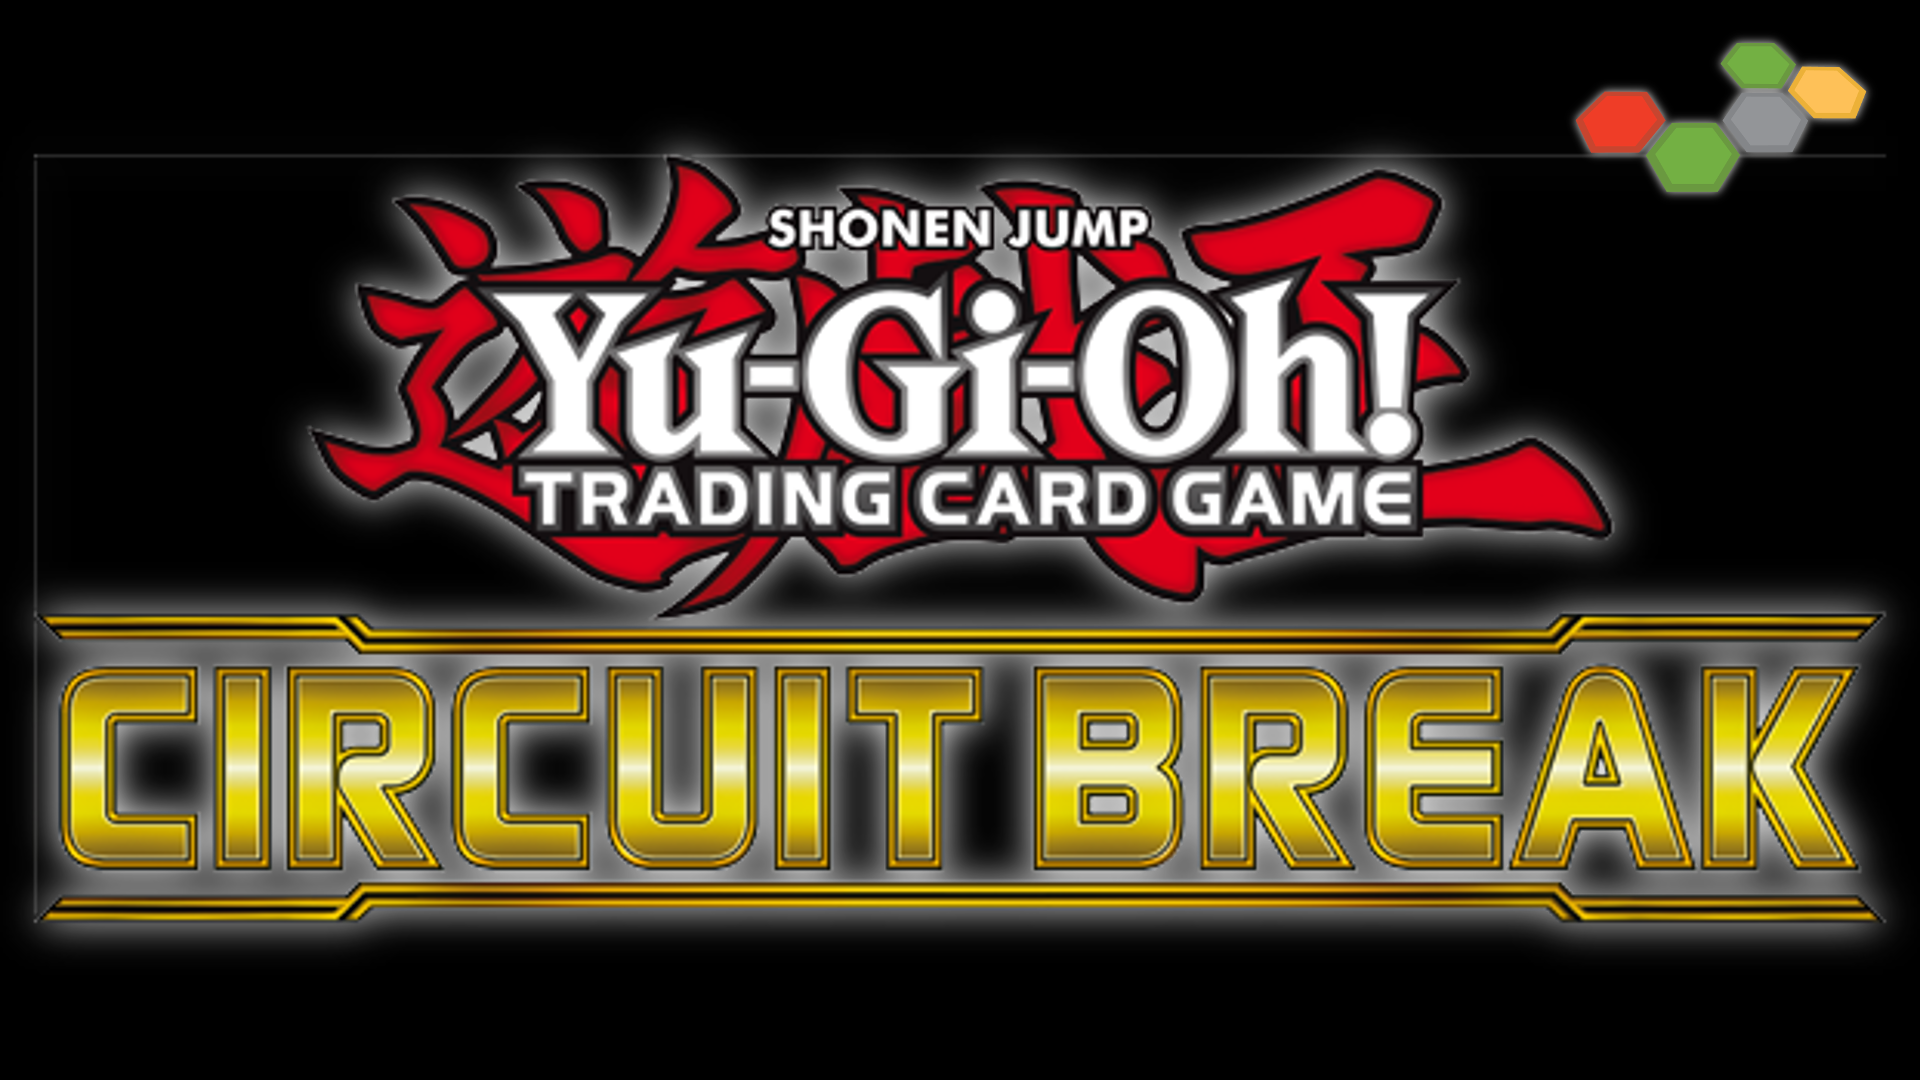 YGO Circuit Break Event Image.png